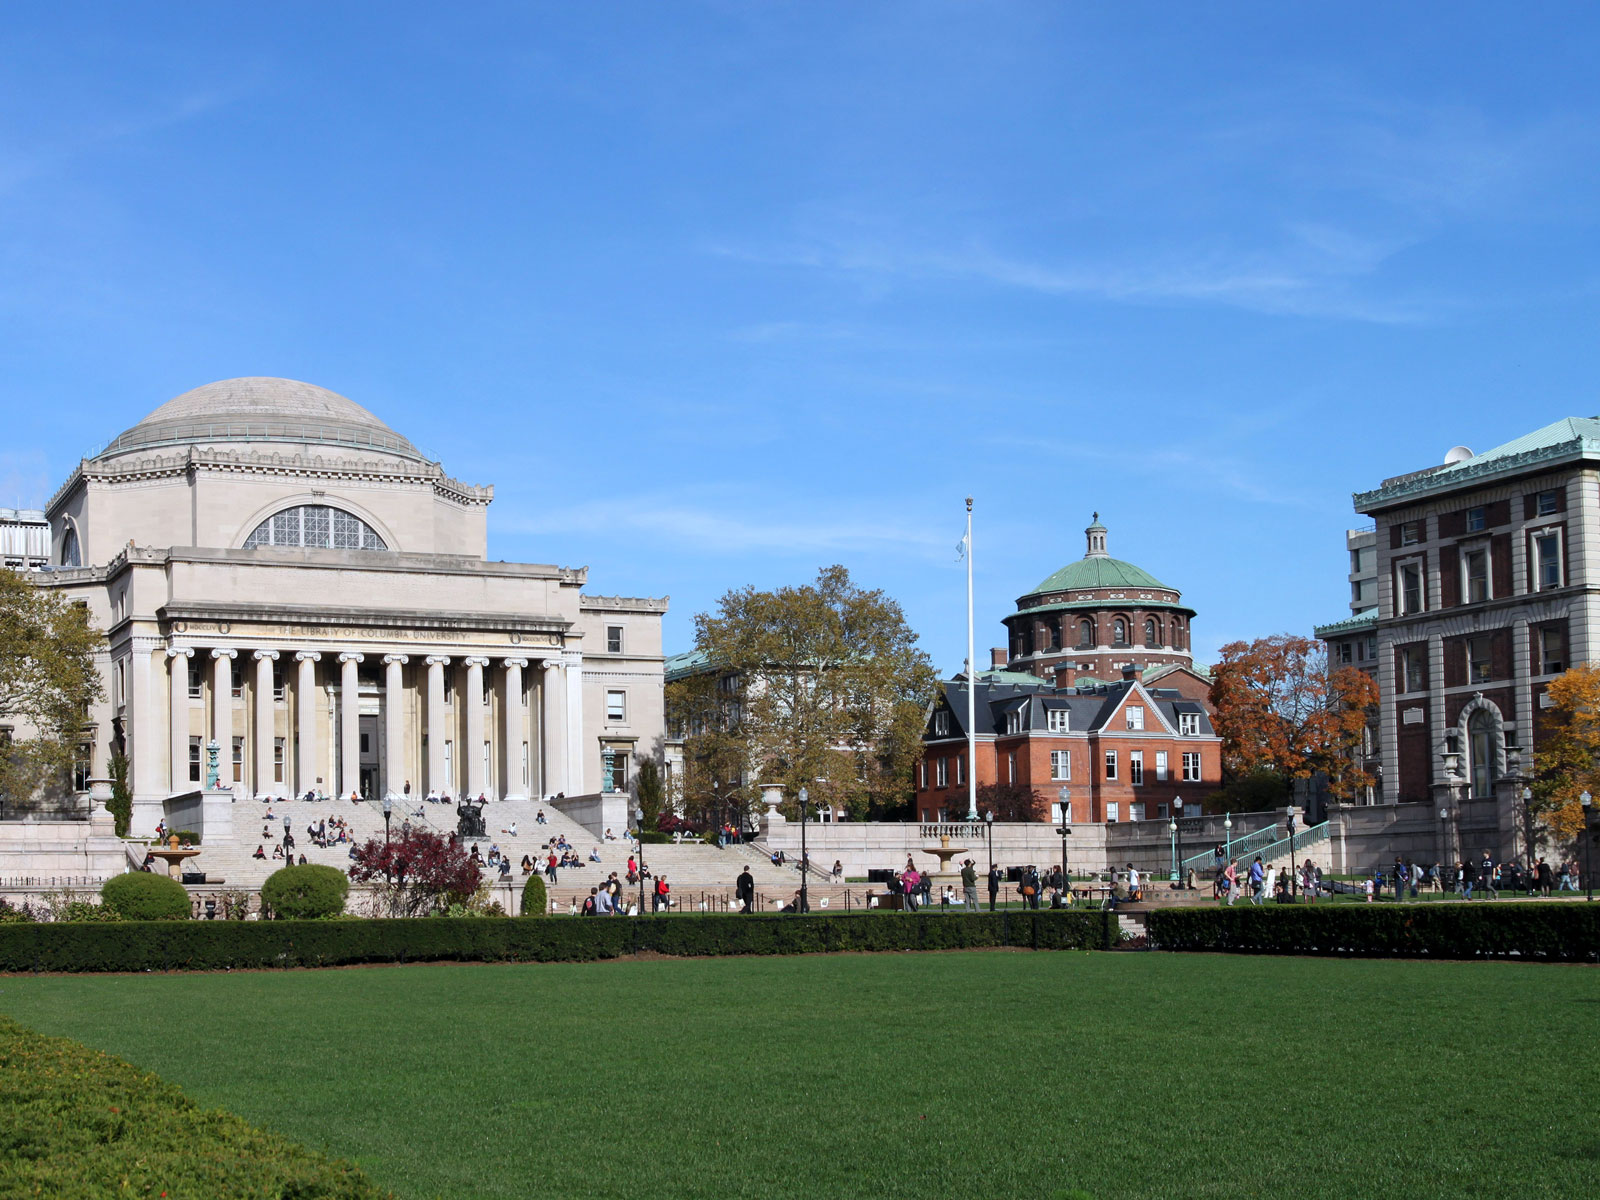 Columbia OpenTable College Towns Food-Lovers